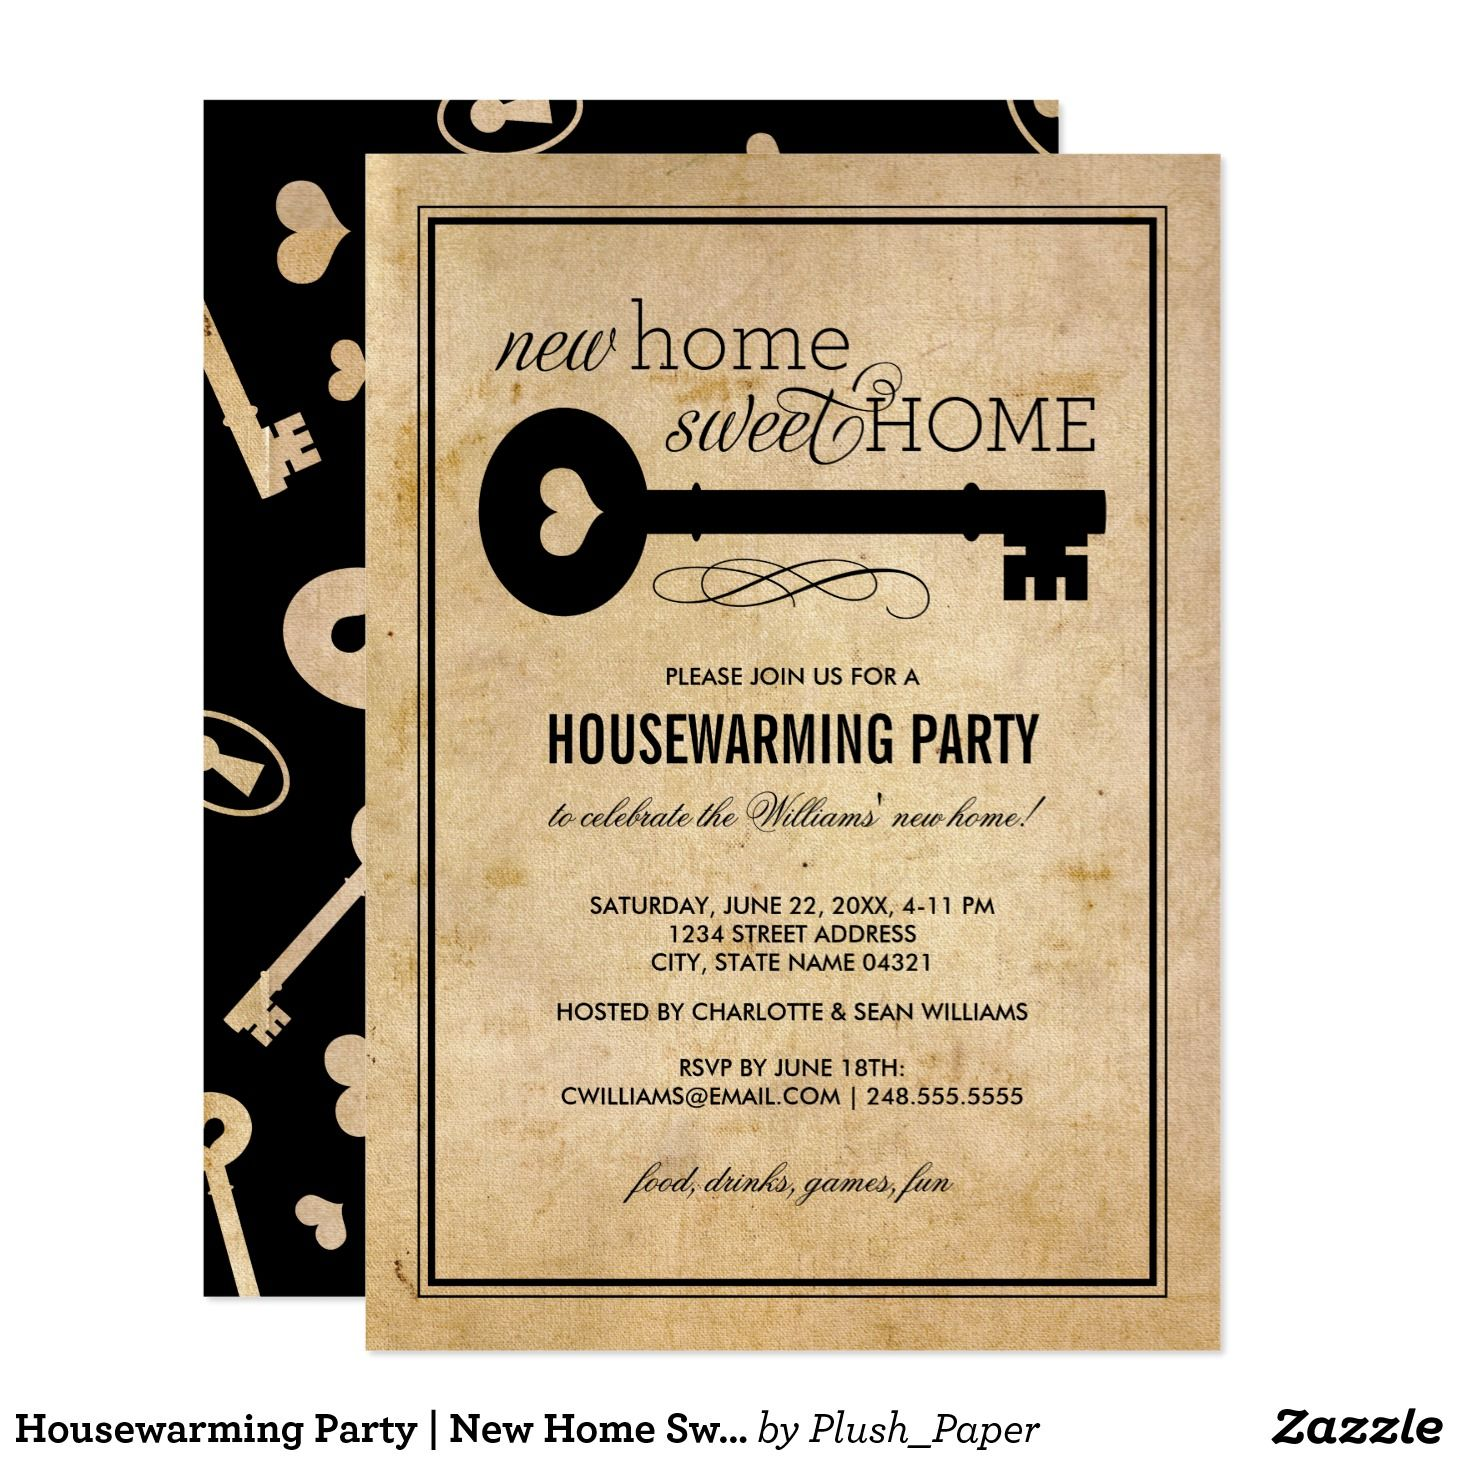 housewarming party new home sweet home invitation. Black Bedroom Furniture Sets. Home Design Ideas